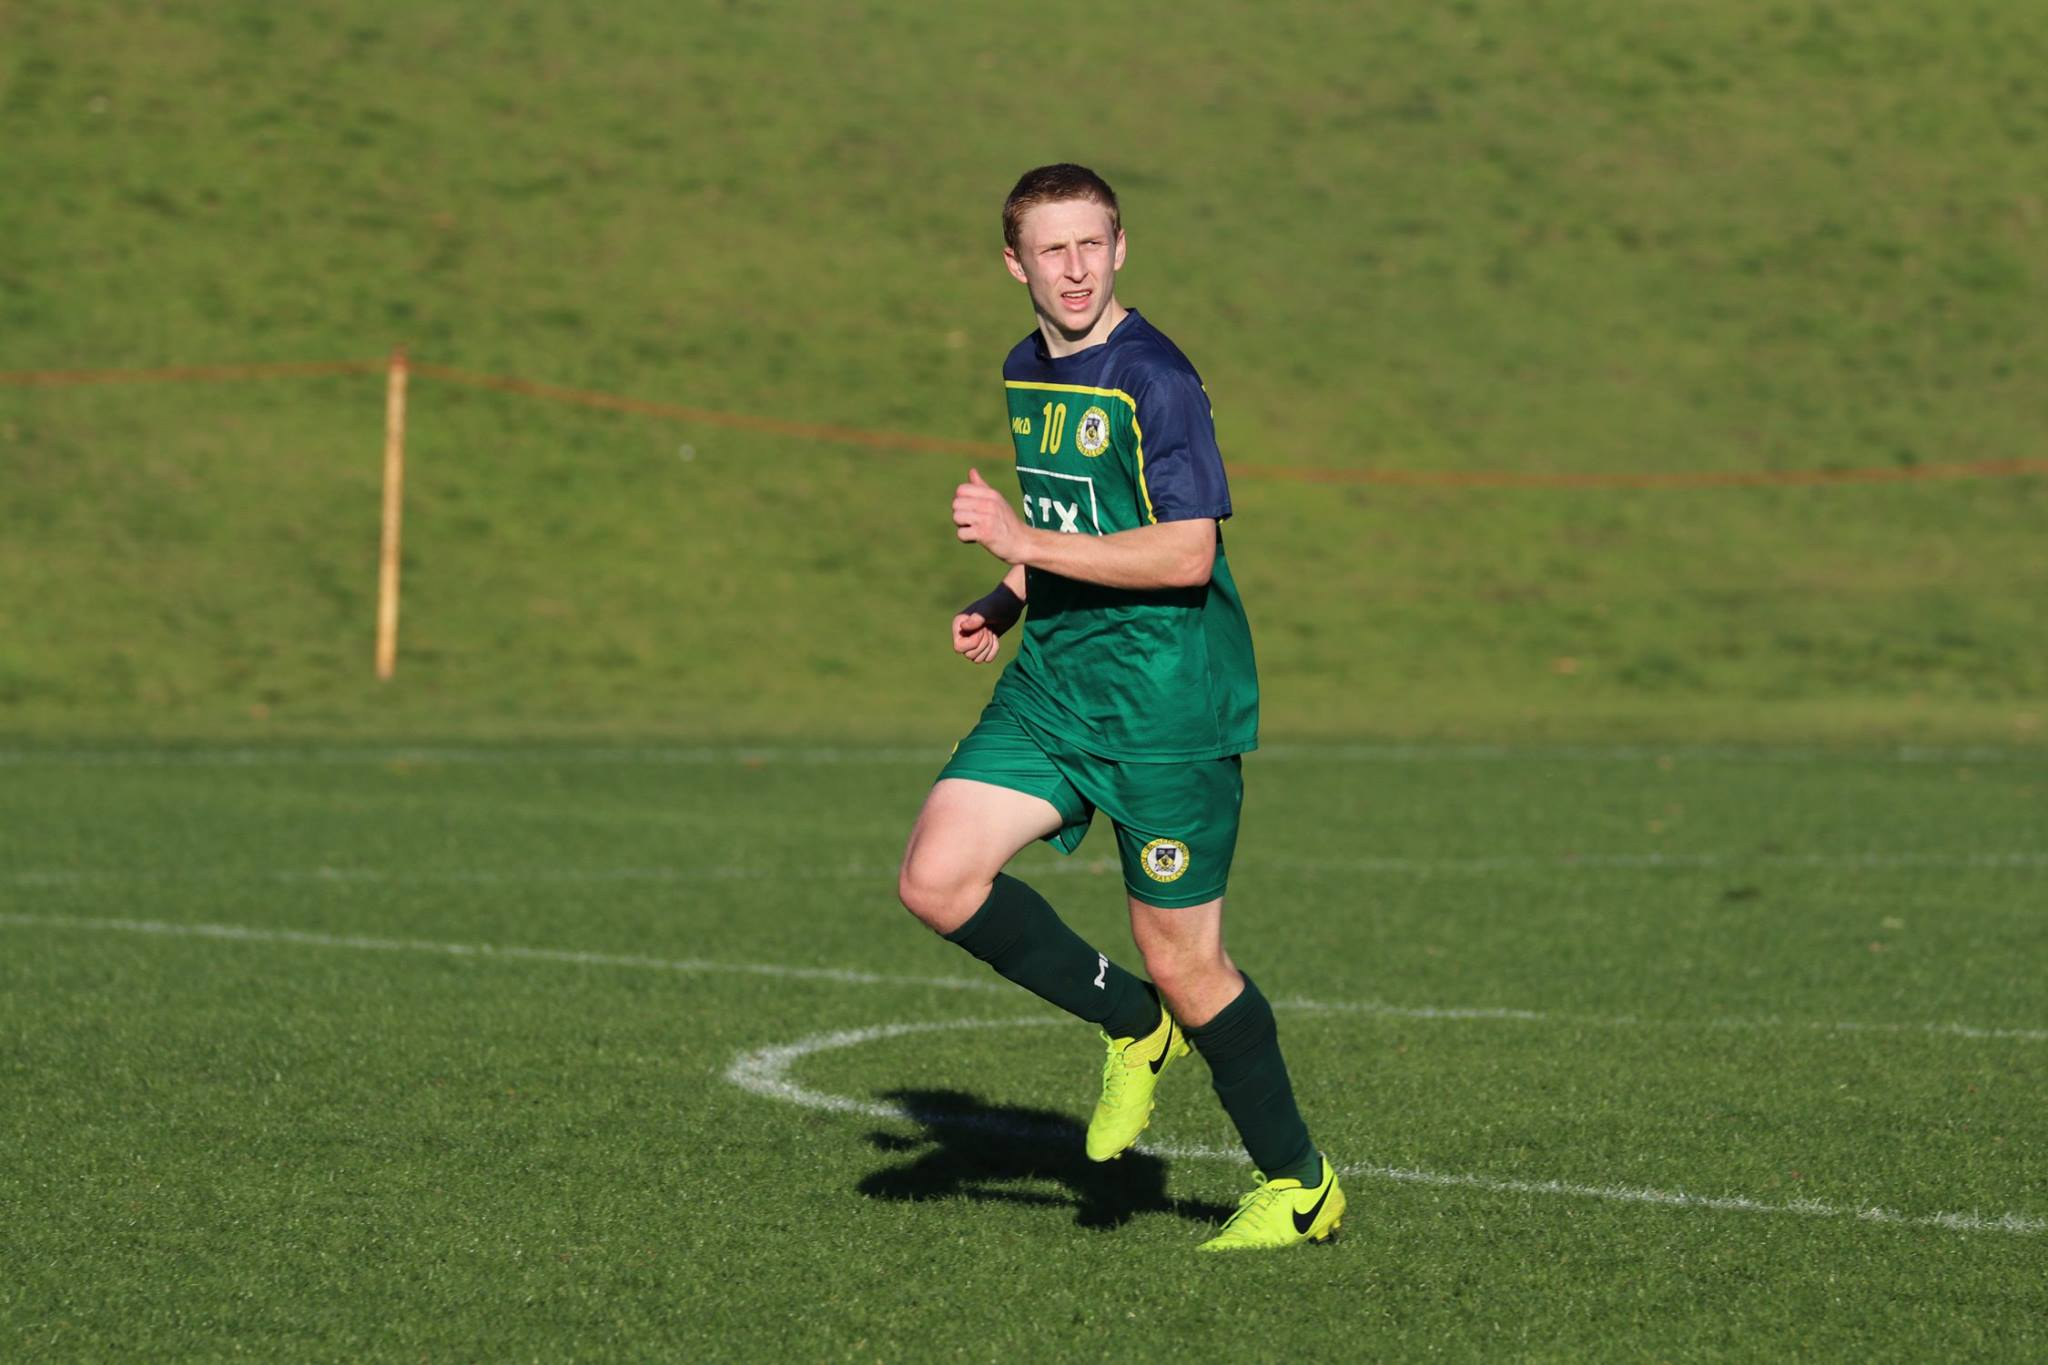 KRETOWICZ WAS UNSTOPPABLE AS HE BURIED IN SIX GOALS - CREDIT: GABRIELE MALUGA